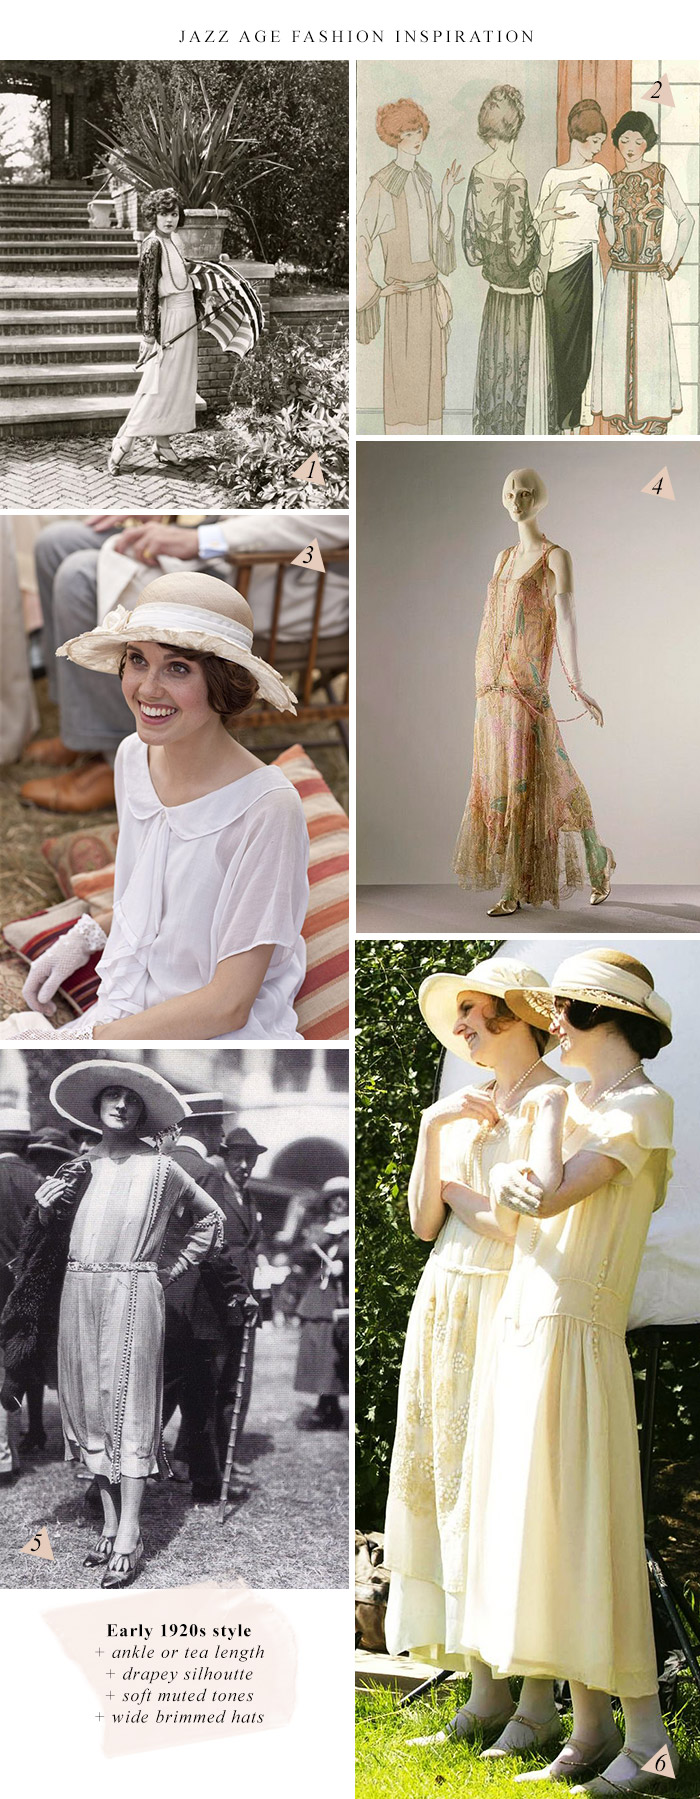 Jazz Age Lawn Party Fashion Inspiration \ Early 1920s